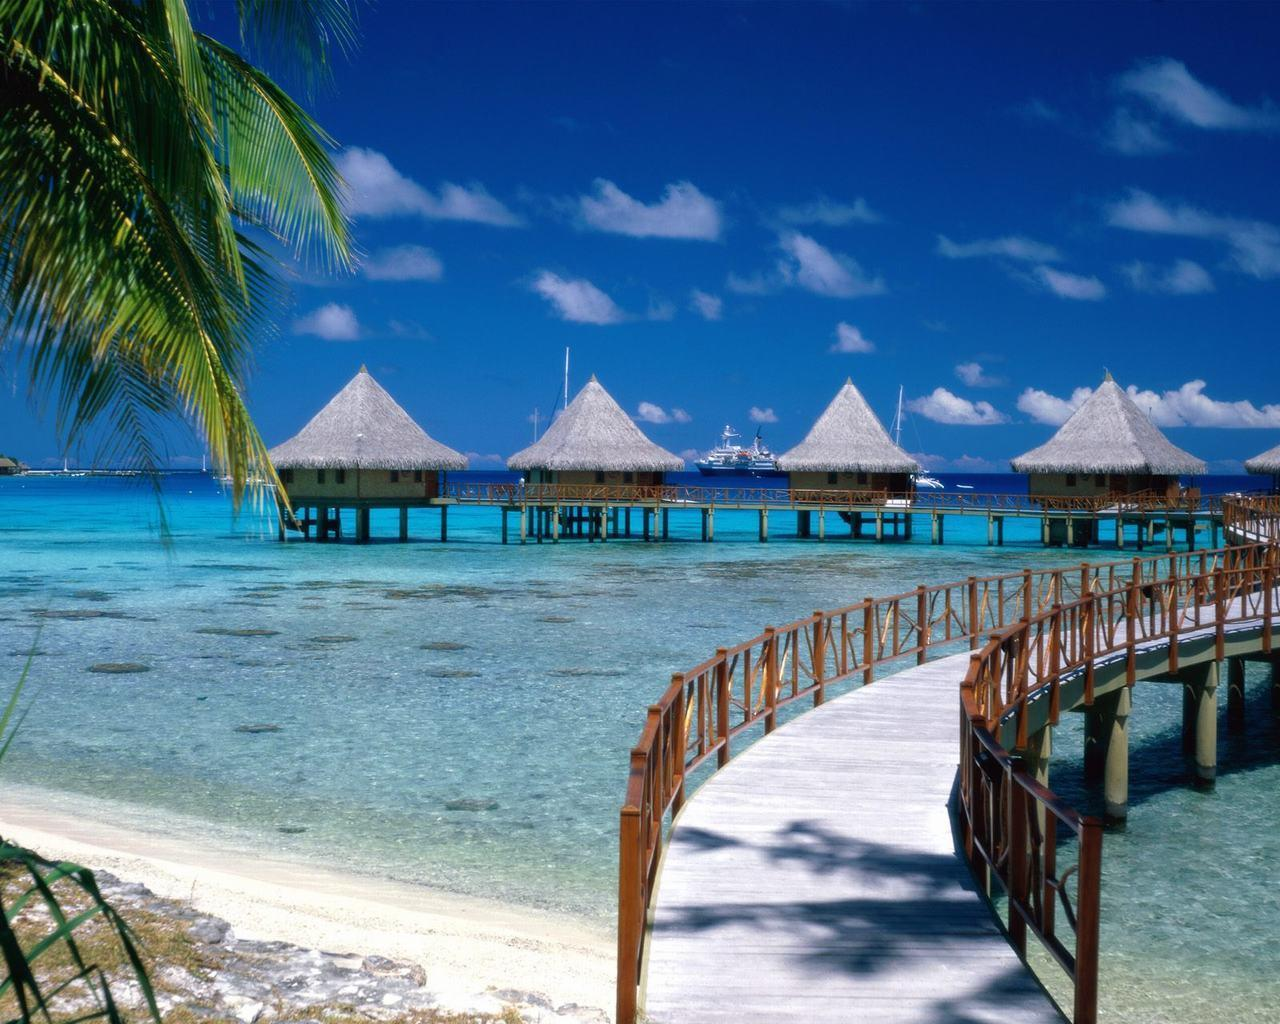 tropical island backgrounds - photo #38